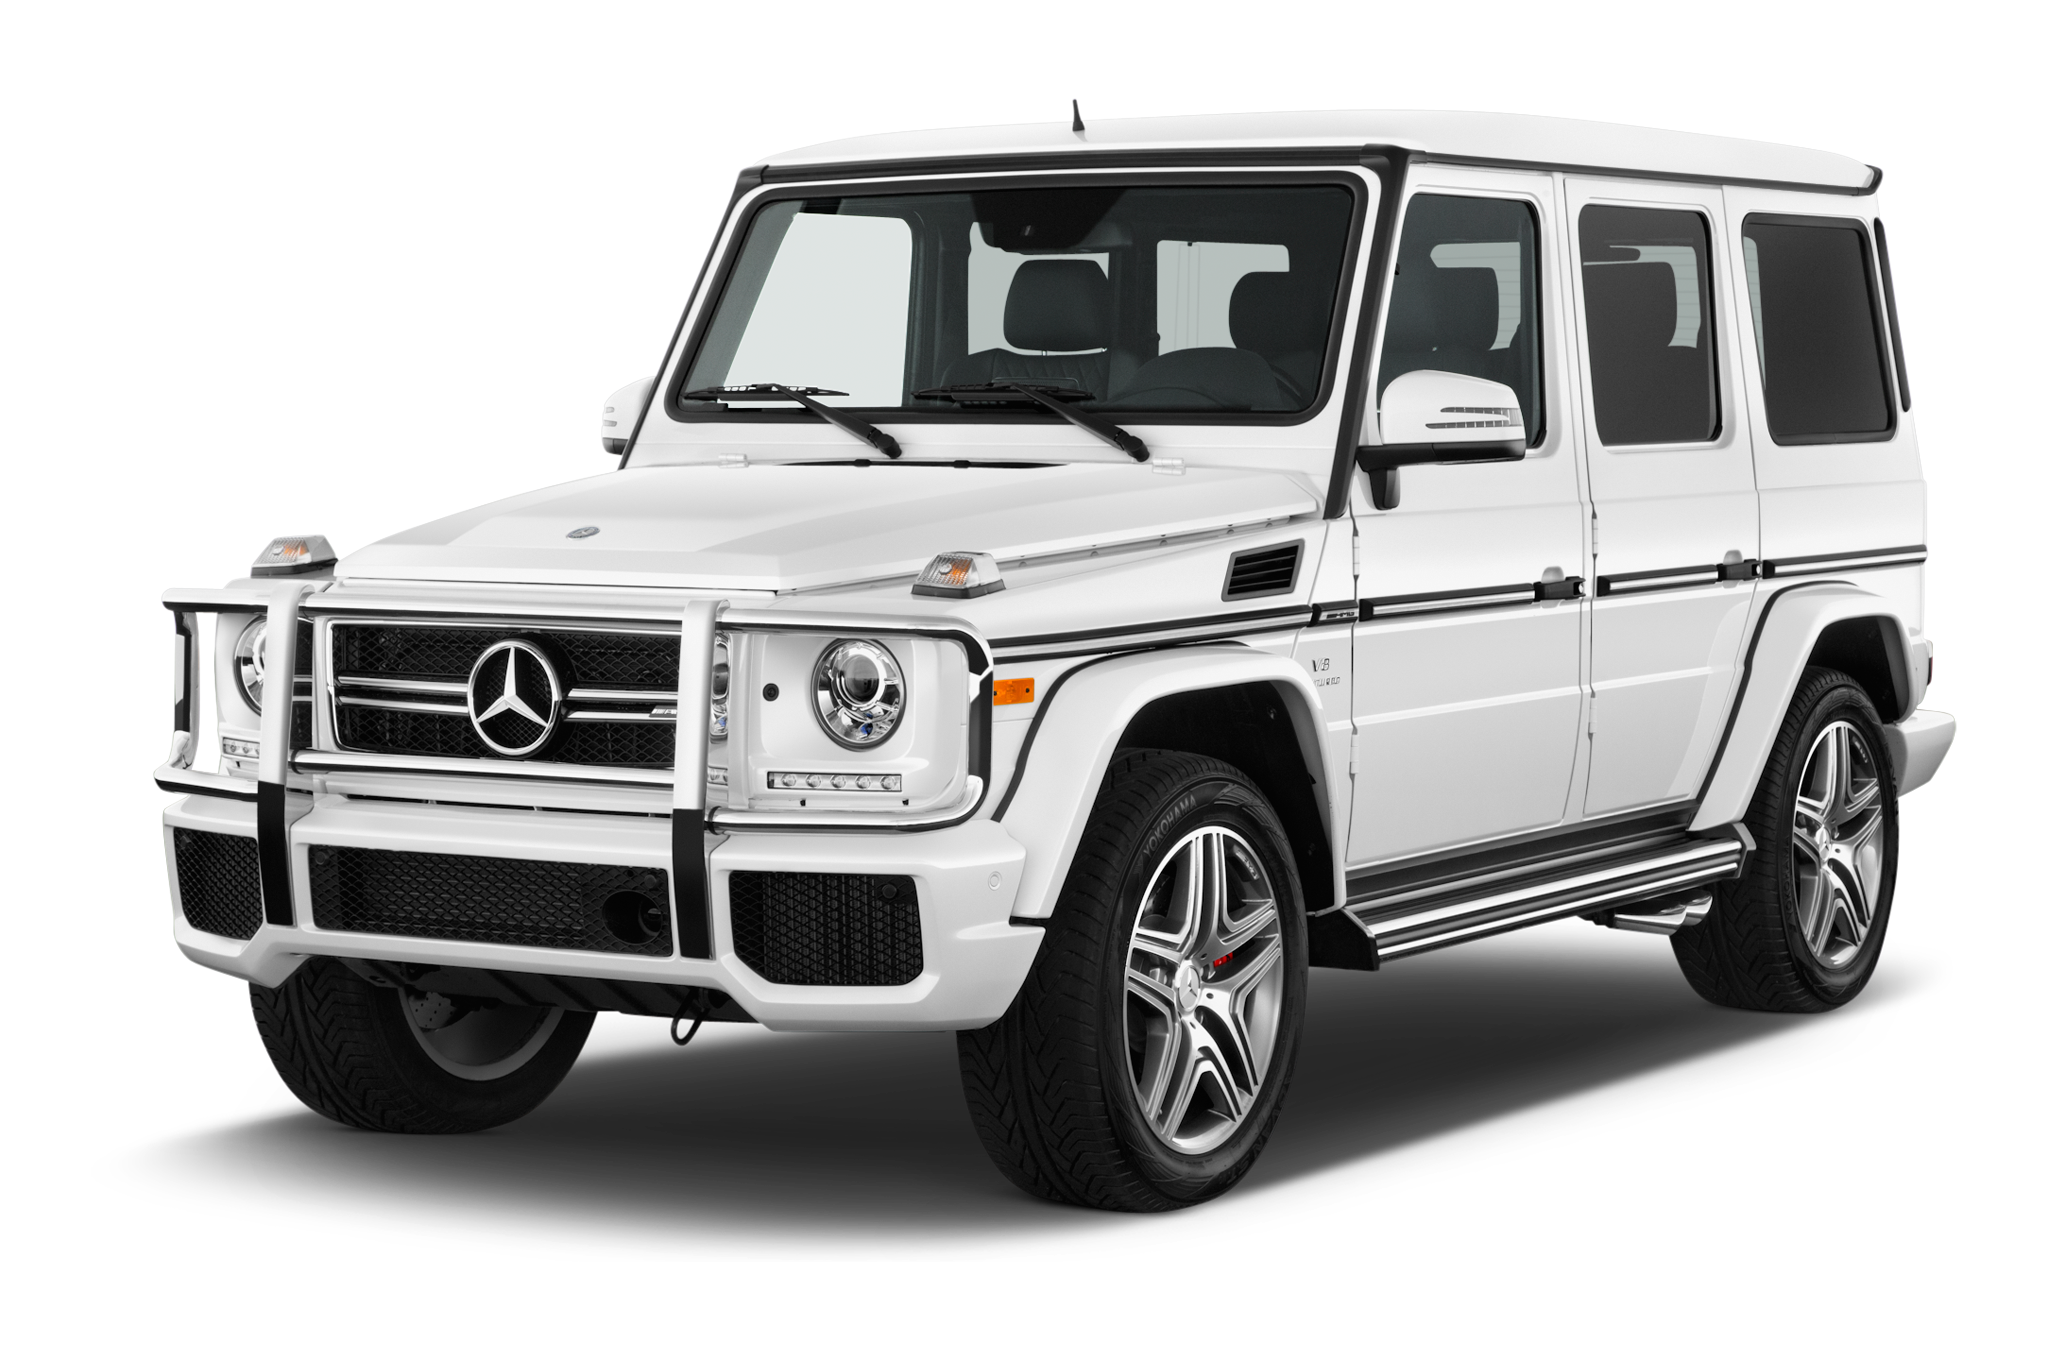 mercedes benz g500 4x4 squared enters production costs 256 000. Black Bedroom Furniture Sets. Home Design Ideas